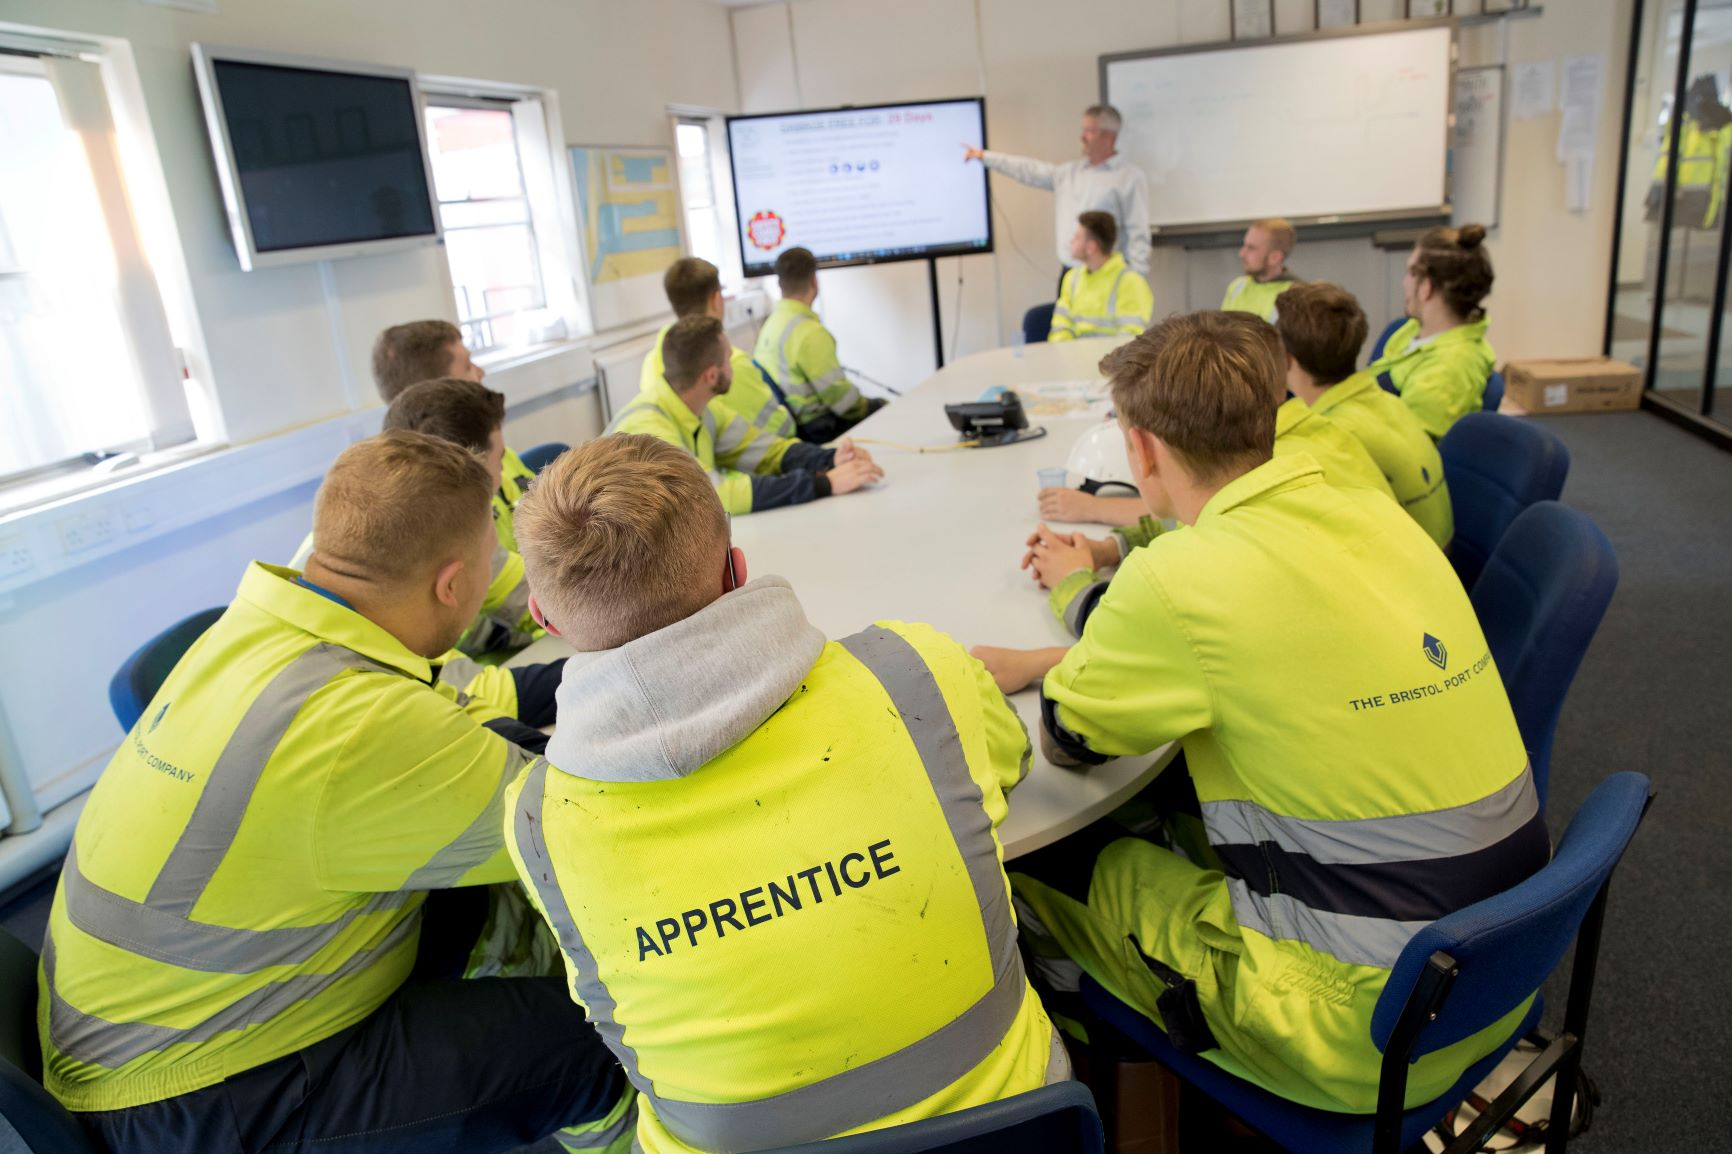 Select Commitee apprenticeships report